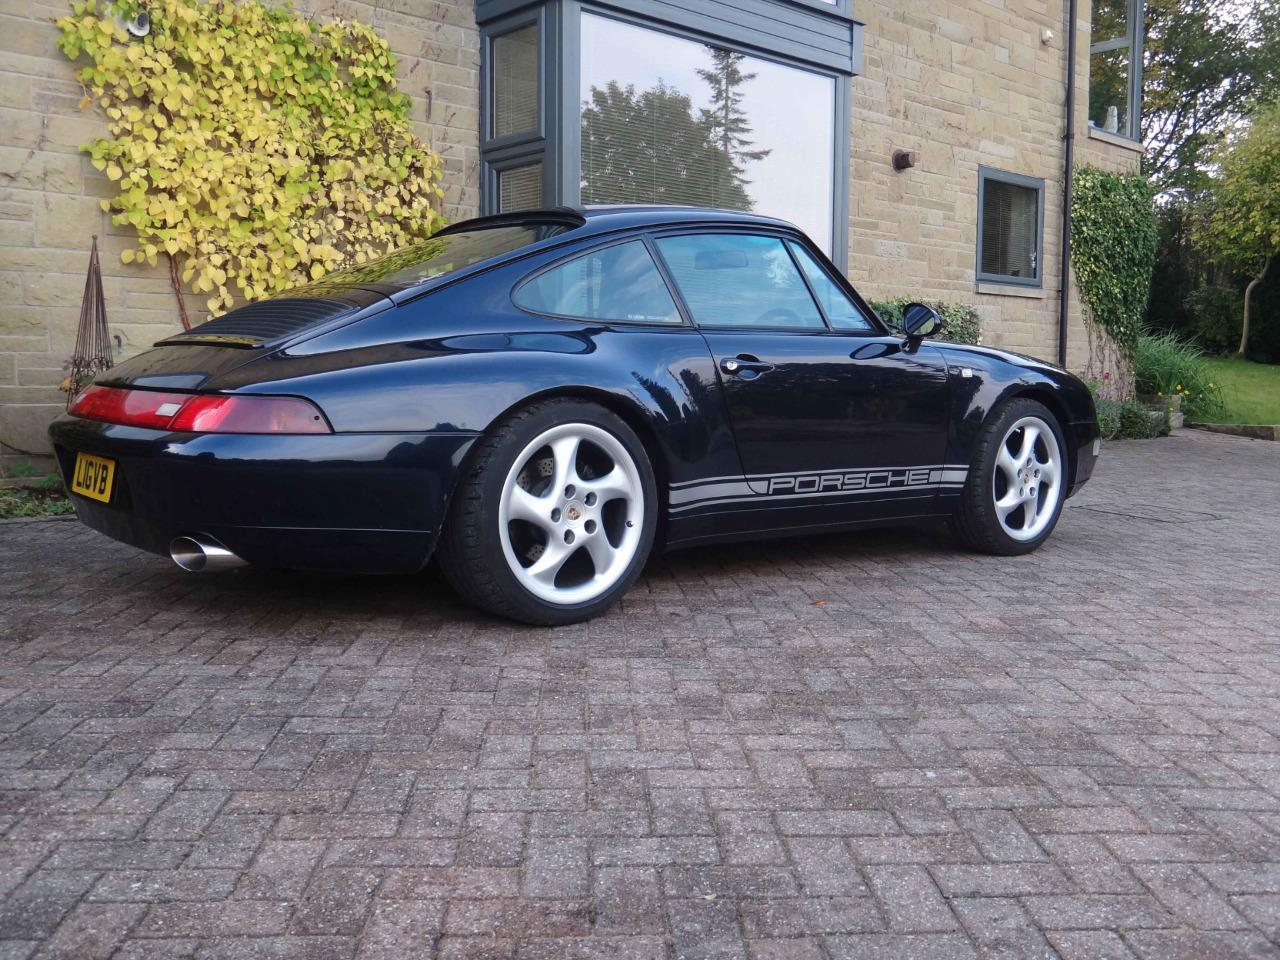 911uk com - Porsche Forum : View topic - Side stripes    If